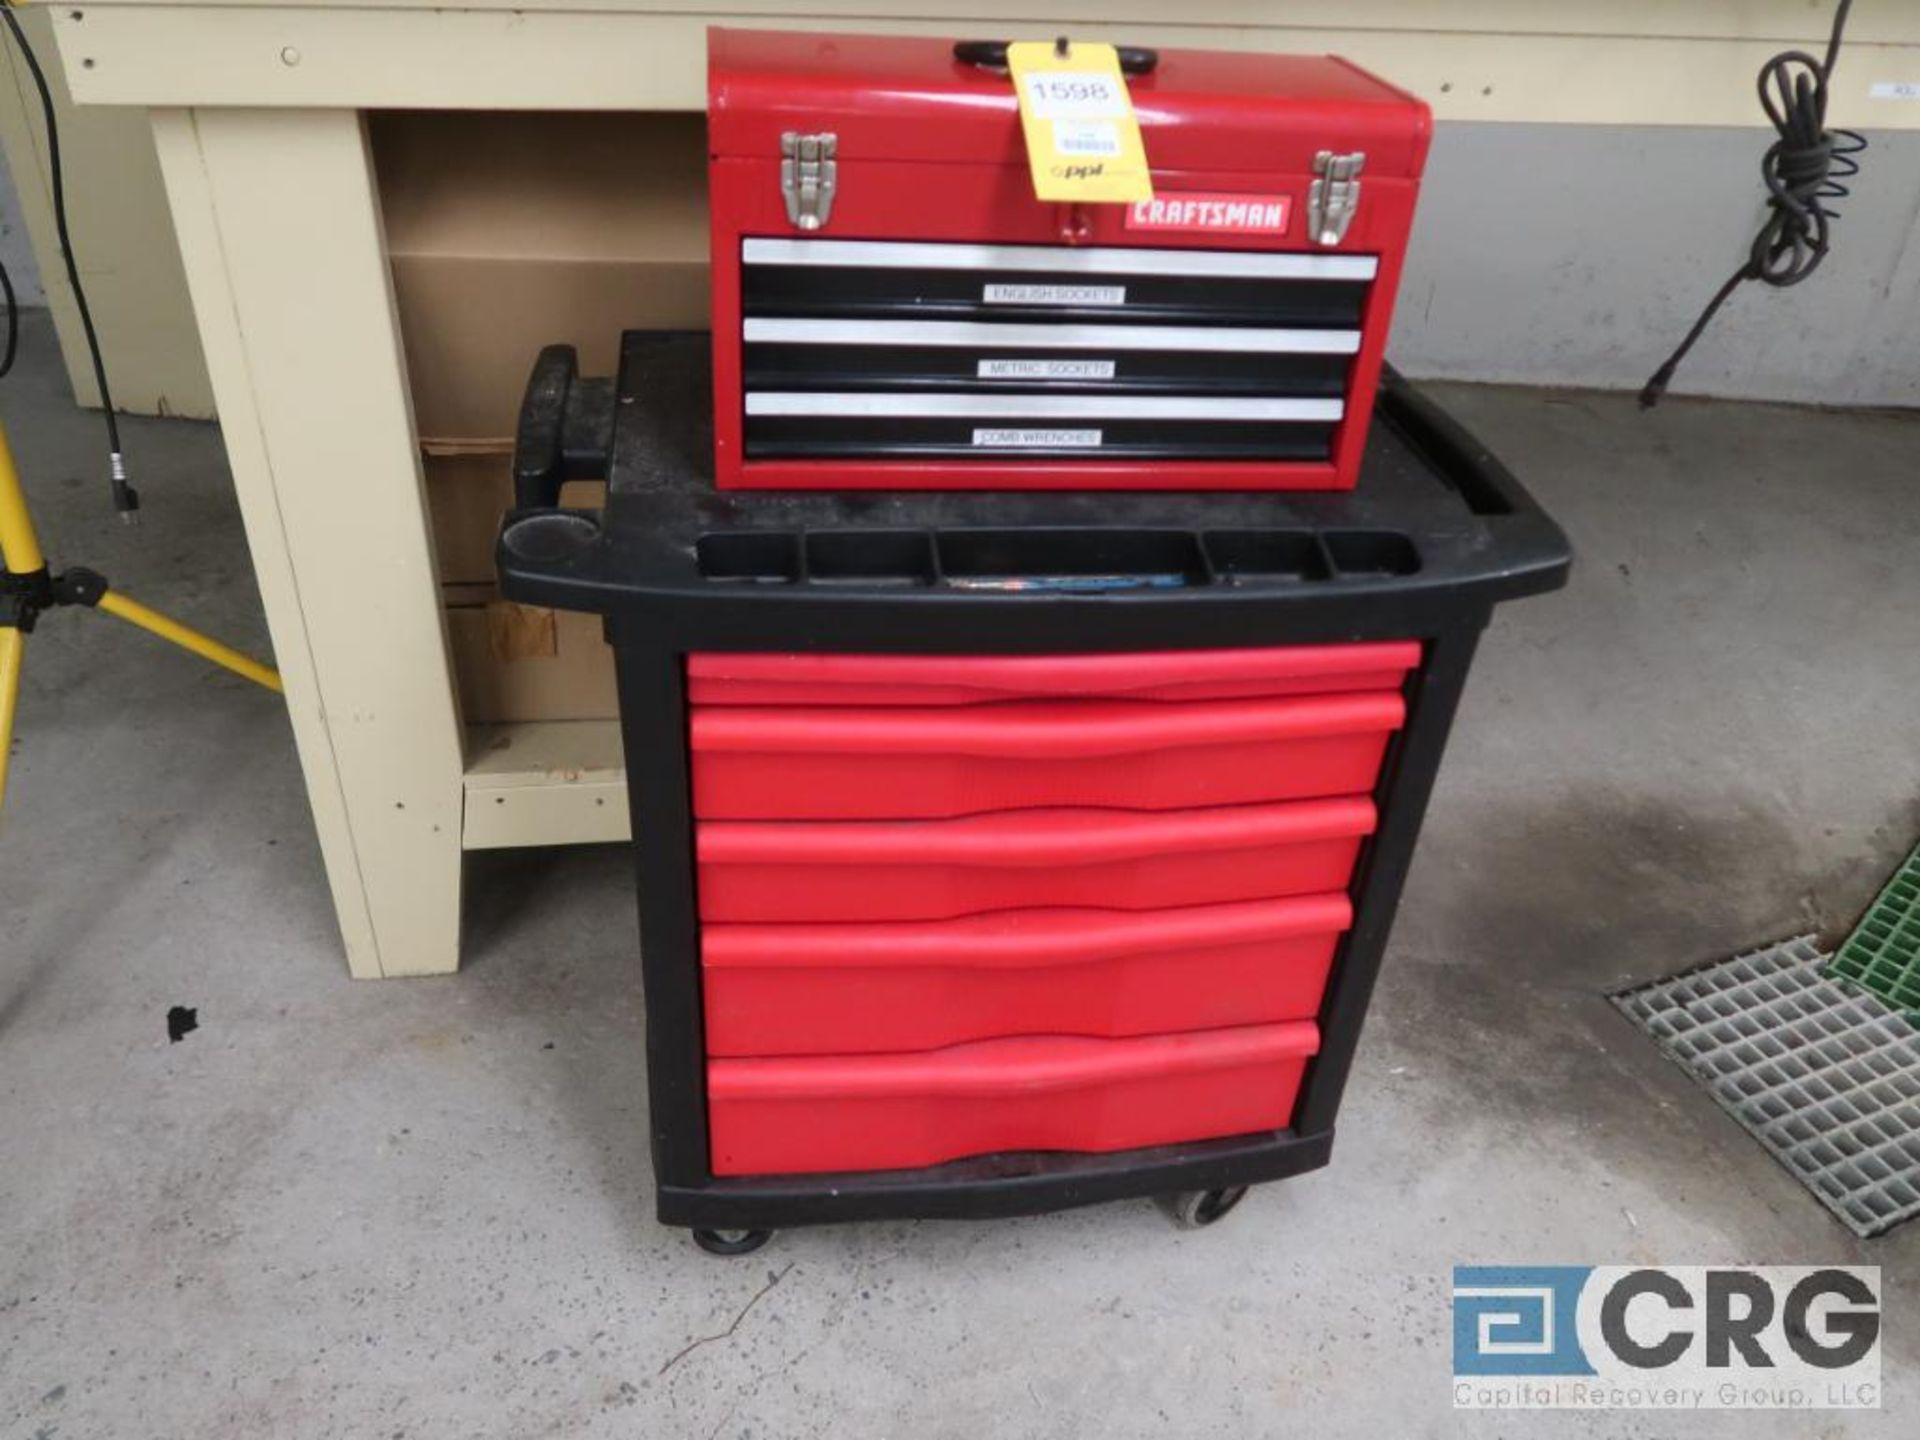 Lot including 2-door wood cabinet with contents including ass't hand tools, on back & side wall, all